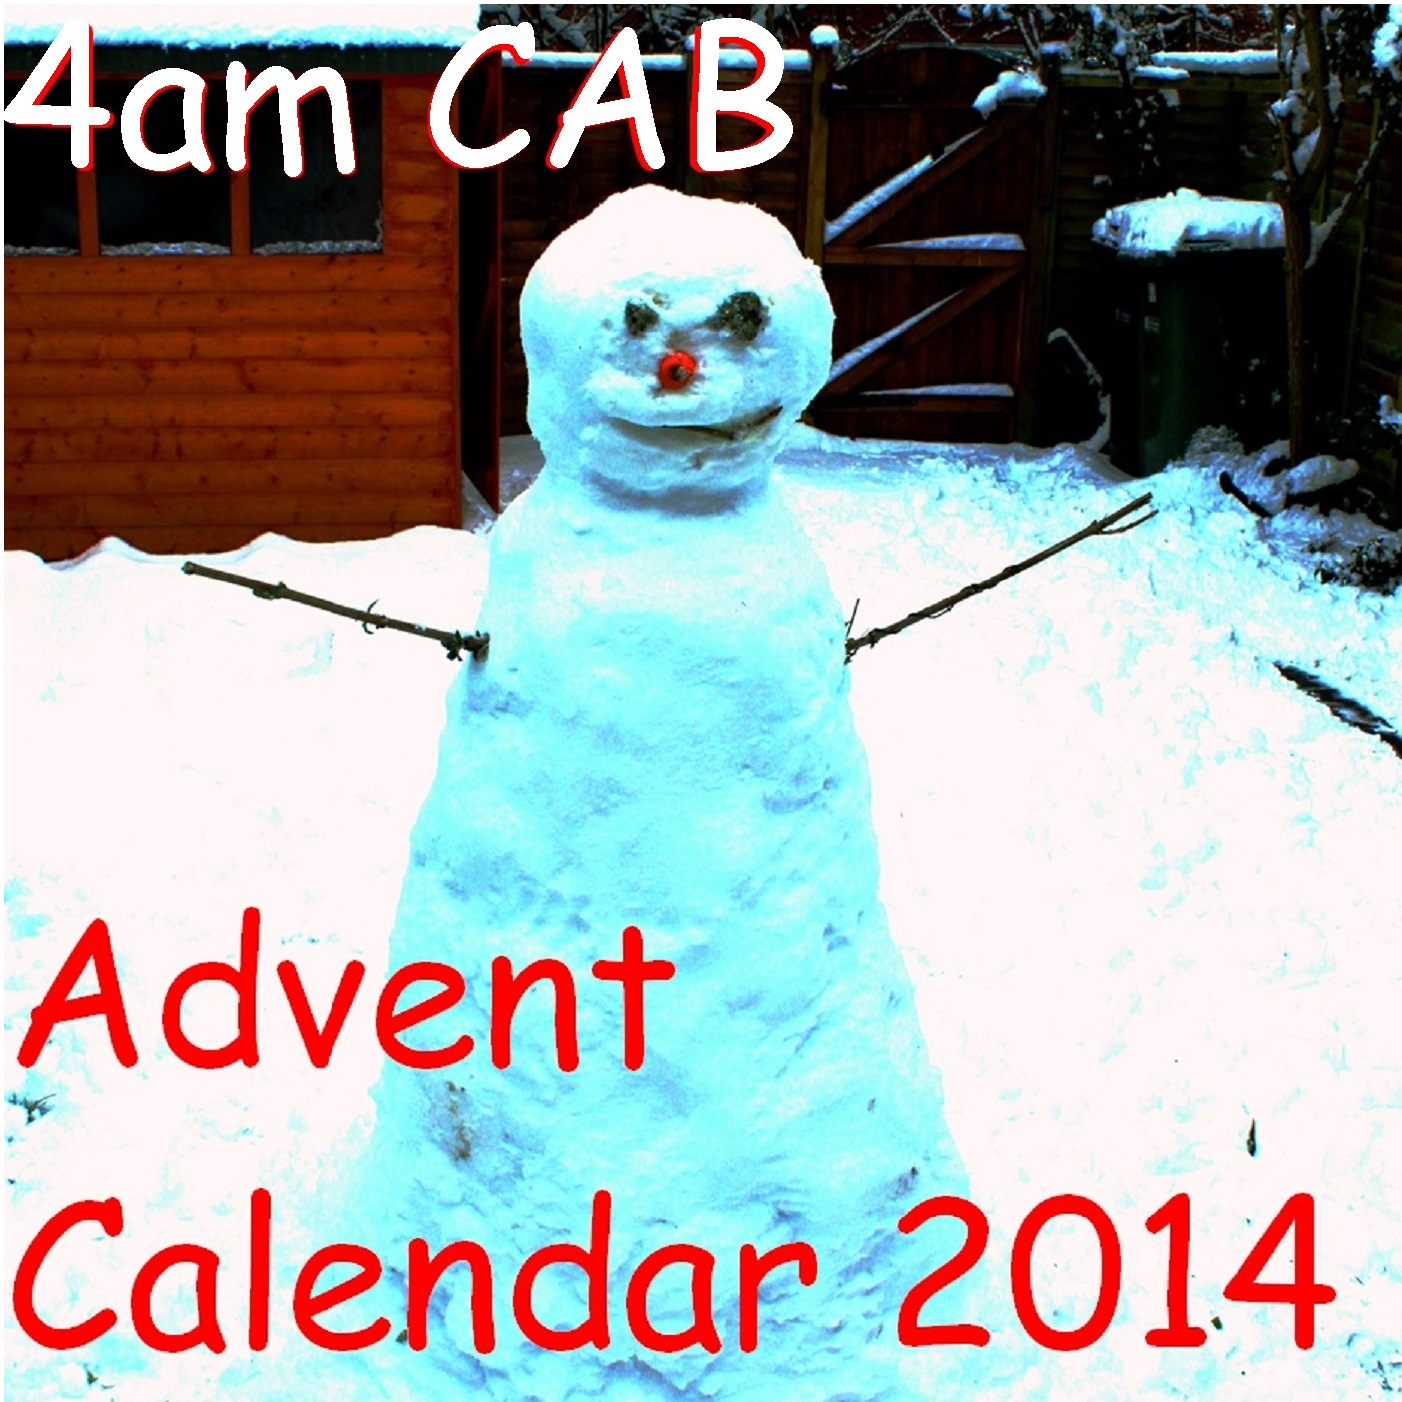 4am CAB Advent Calendar